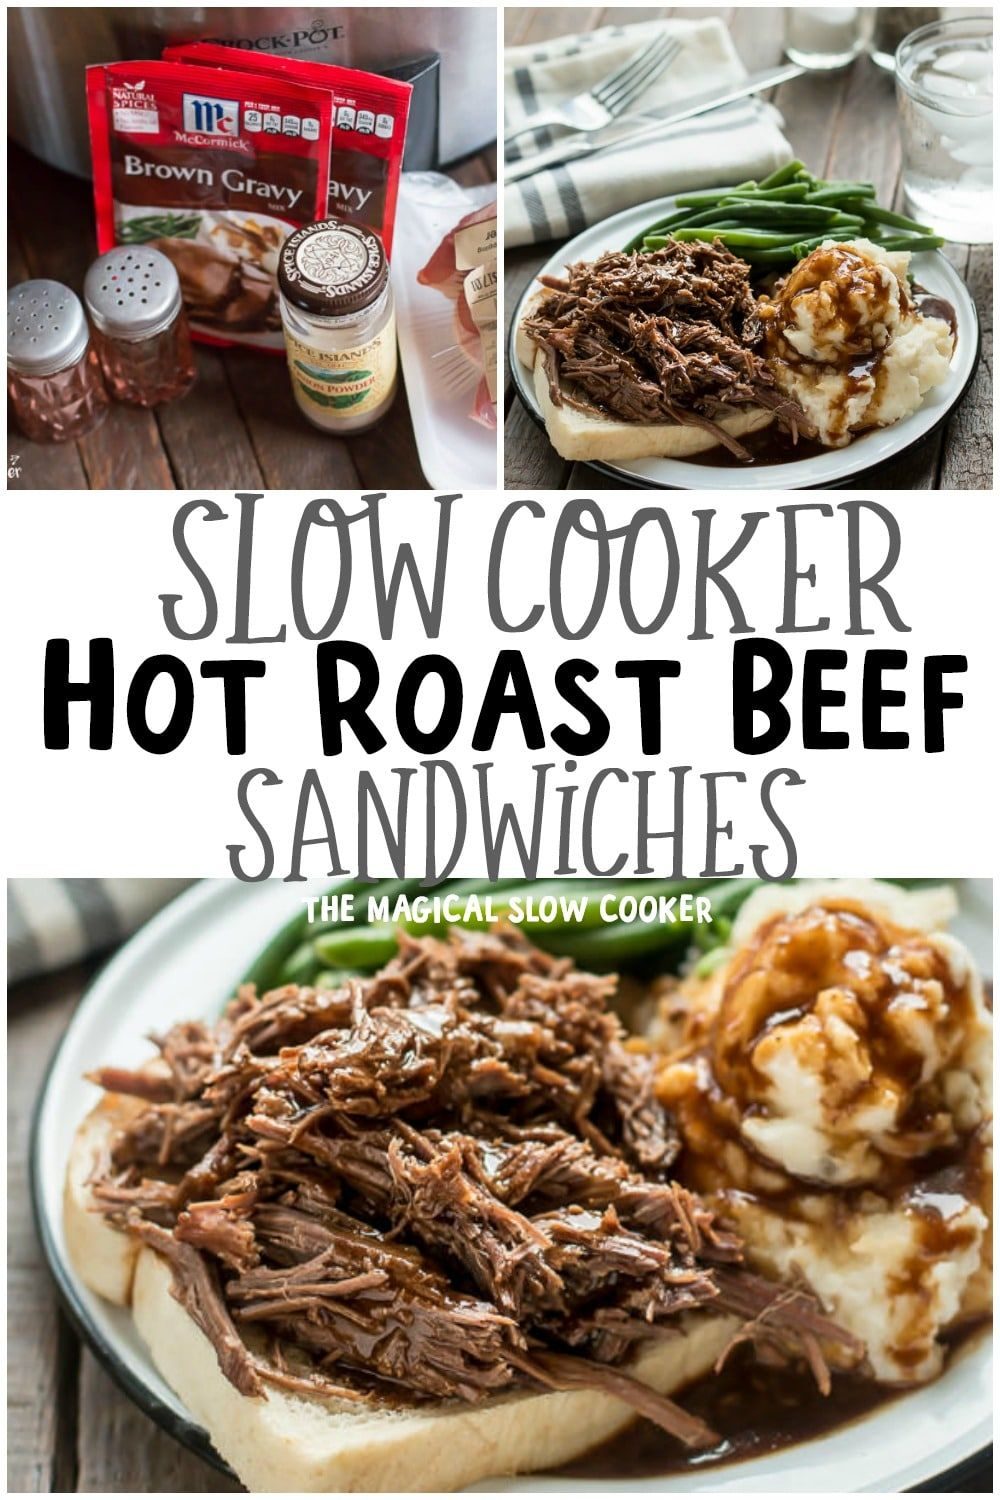 Slow Cooker Hot Roast Beef Sandwiches images